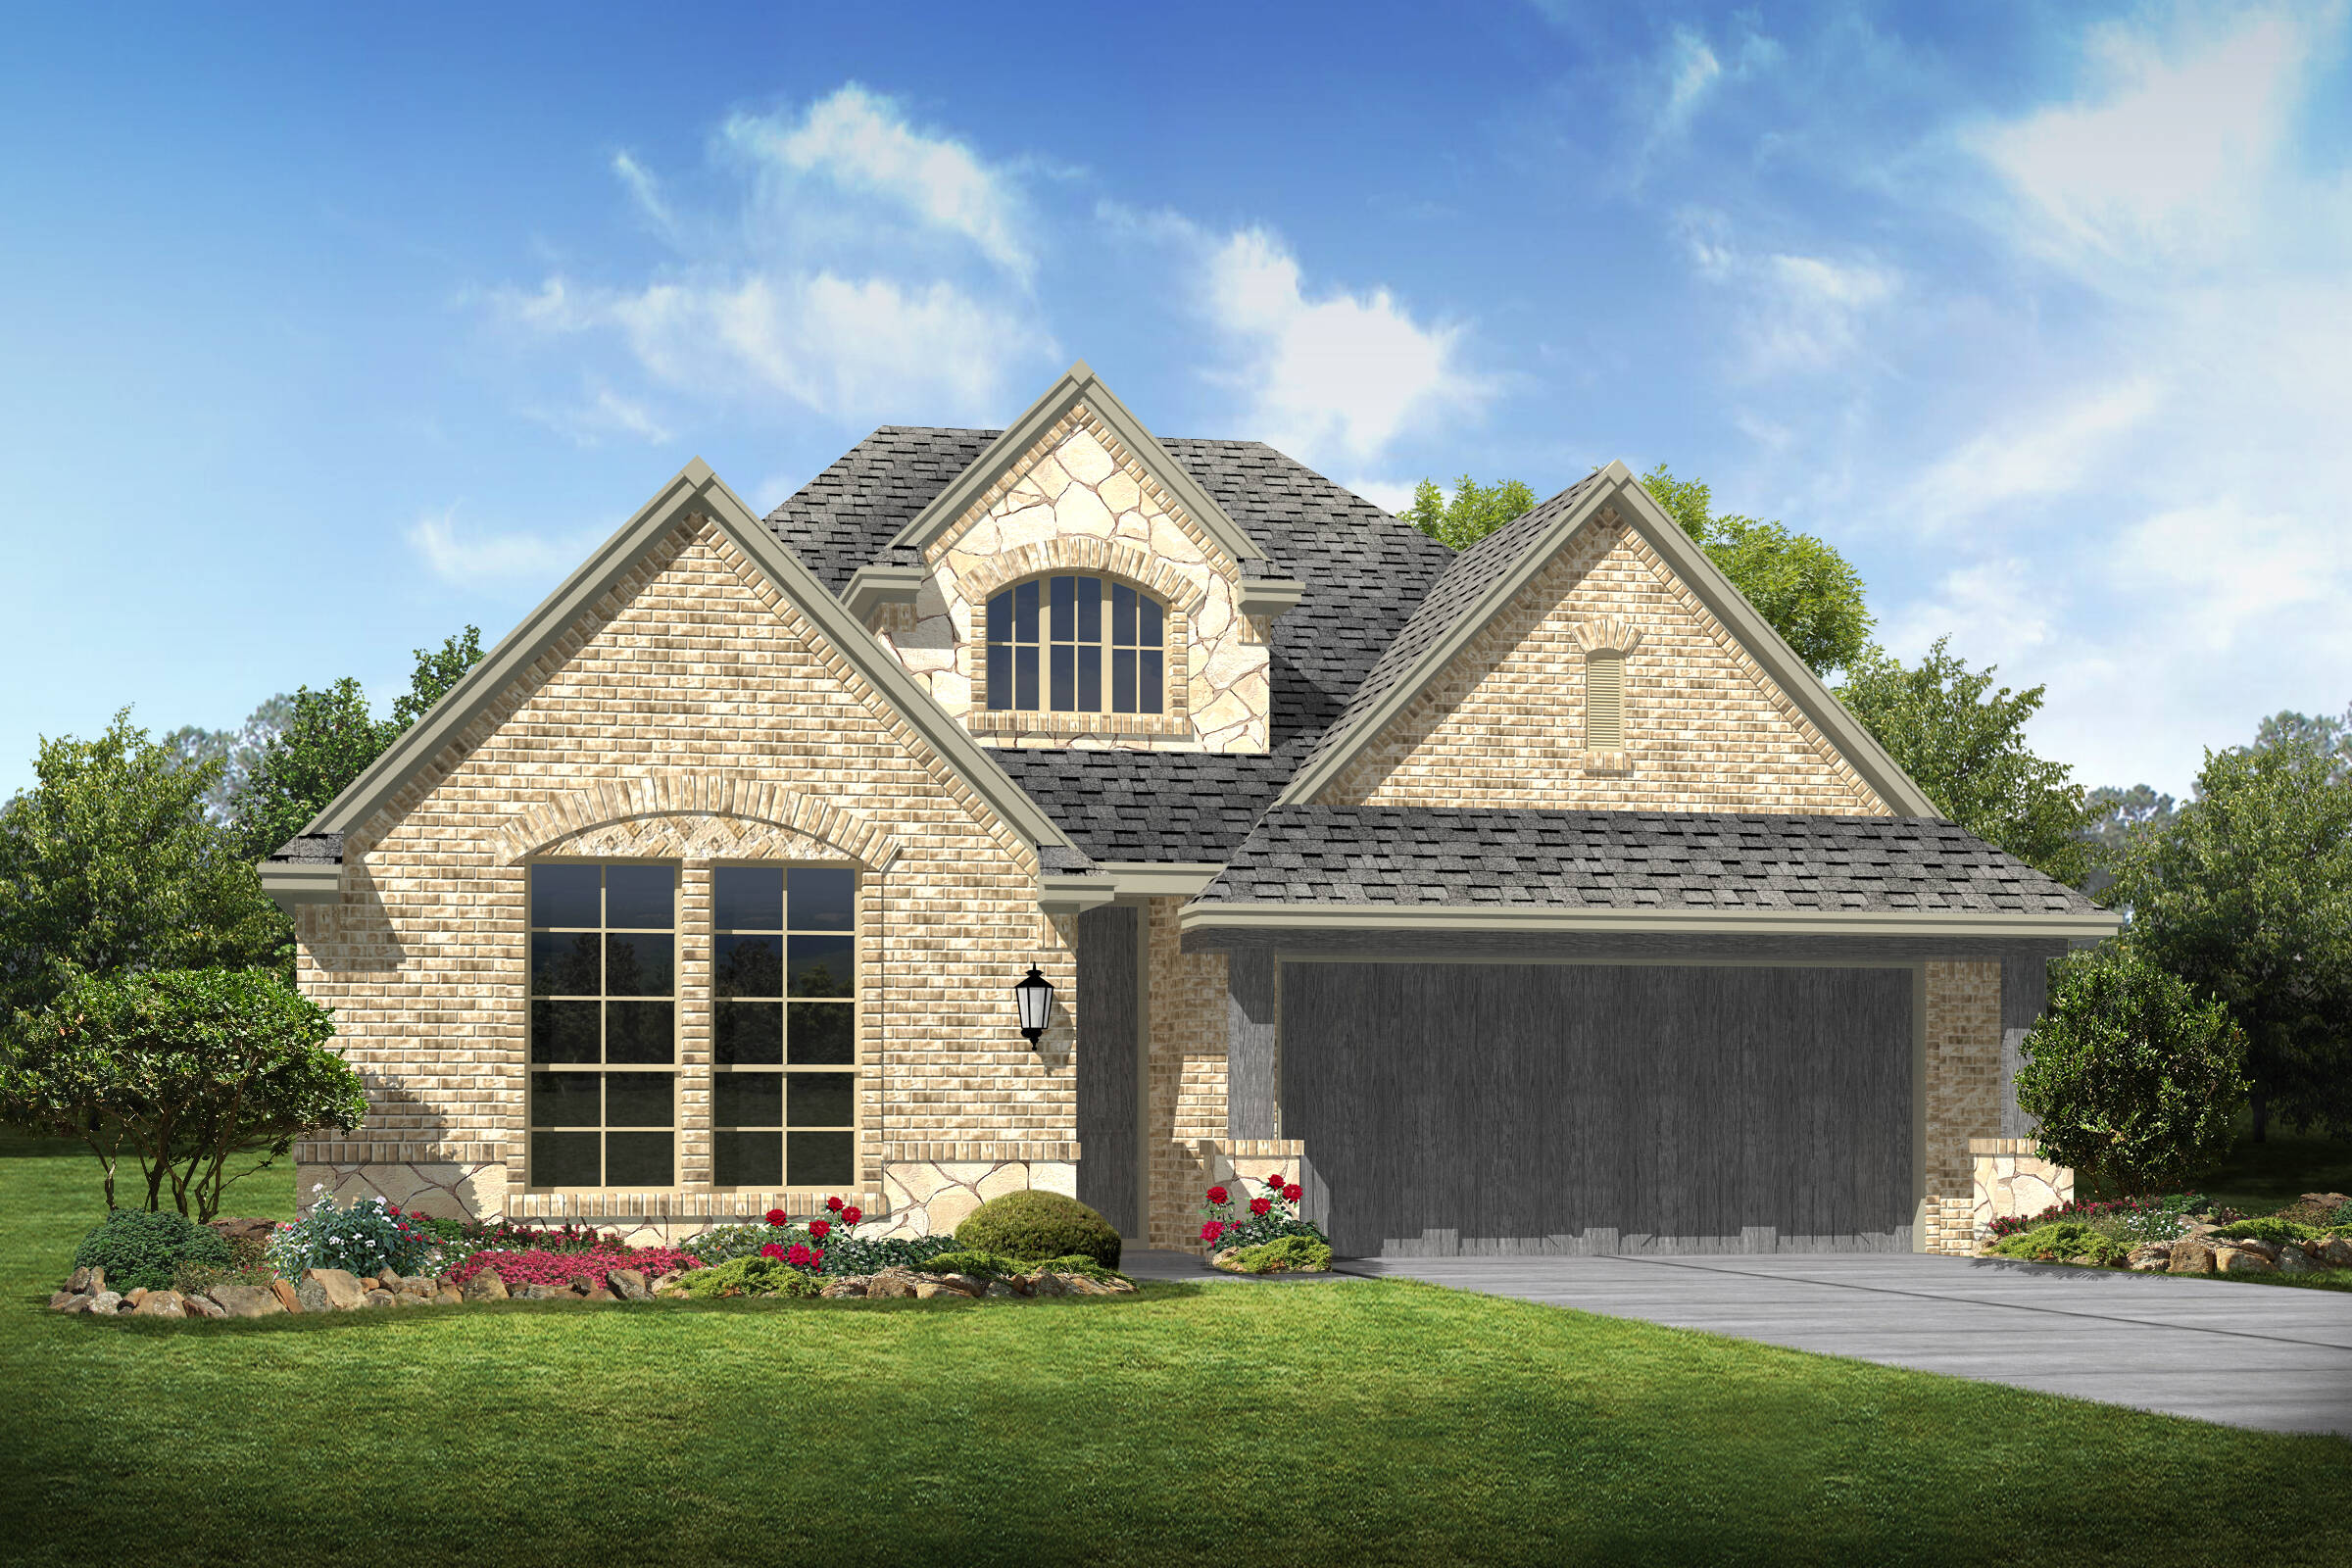 Lorimar d stone new homes dallas texas